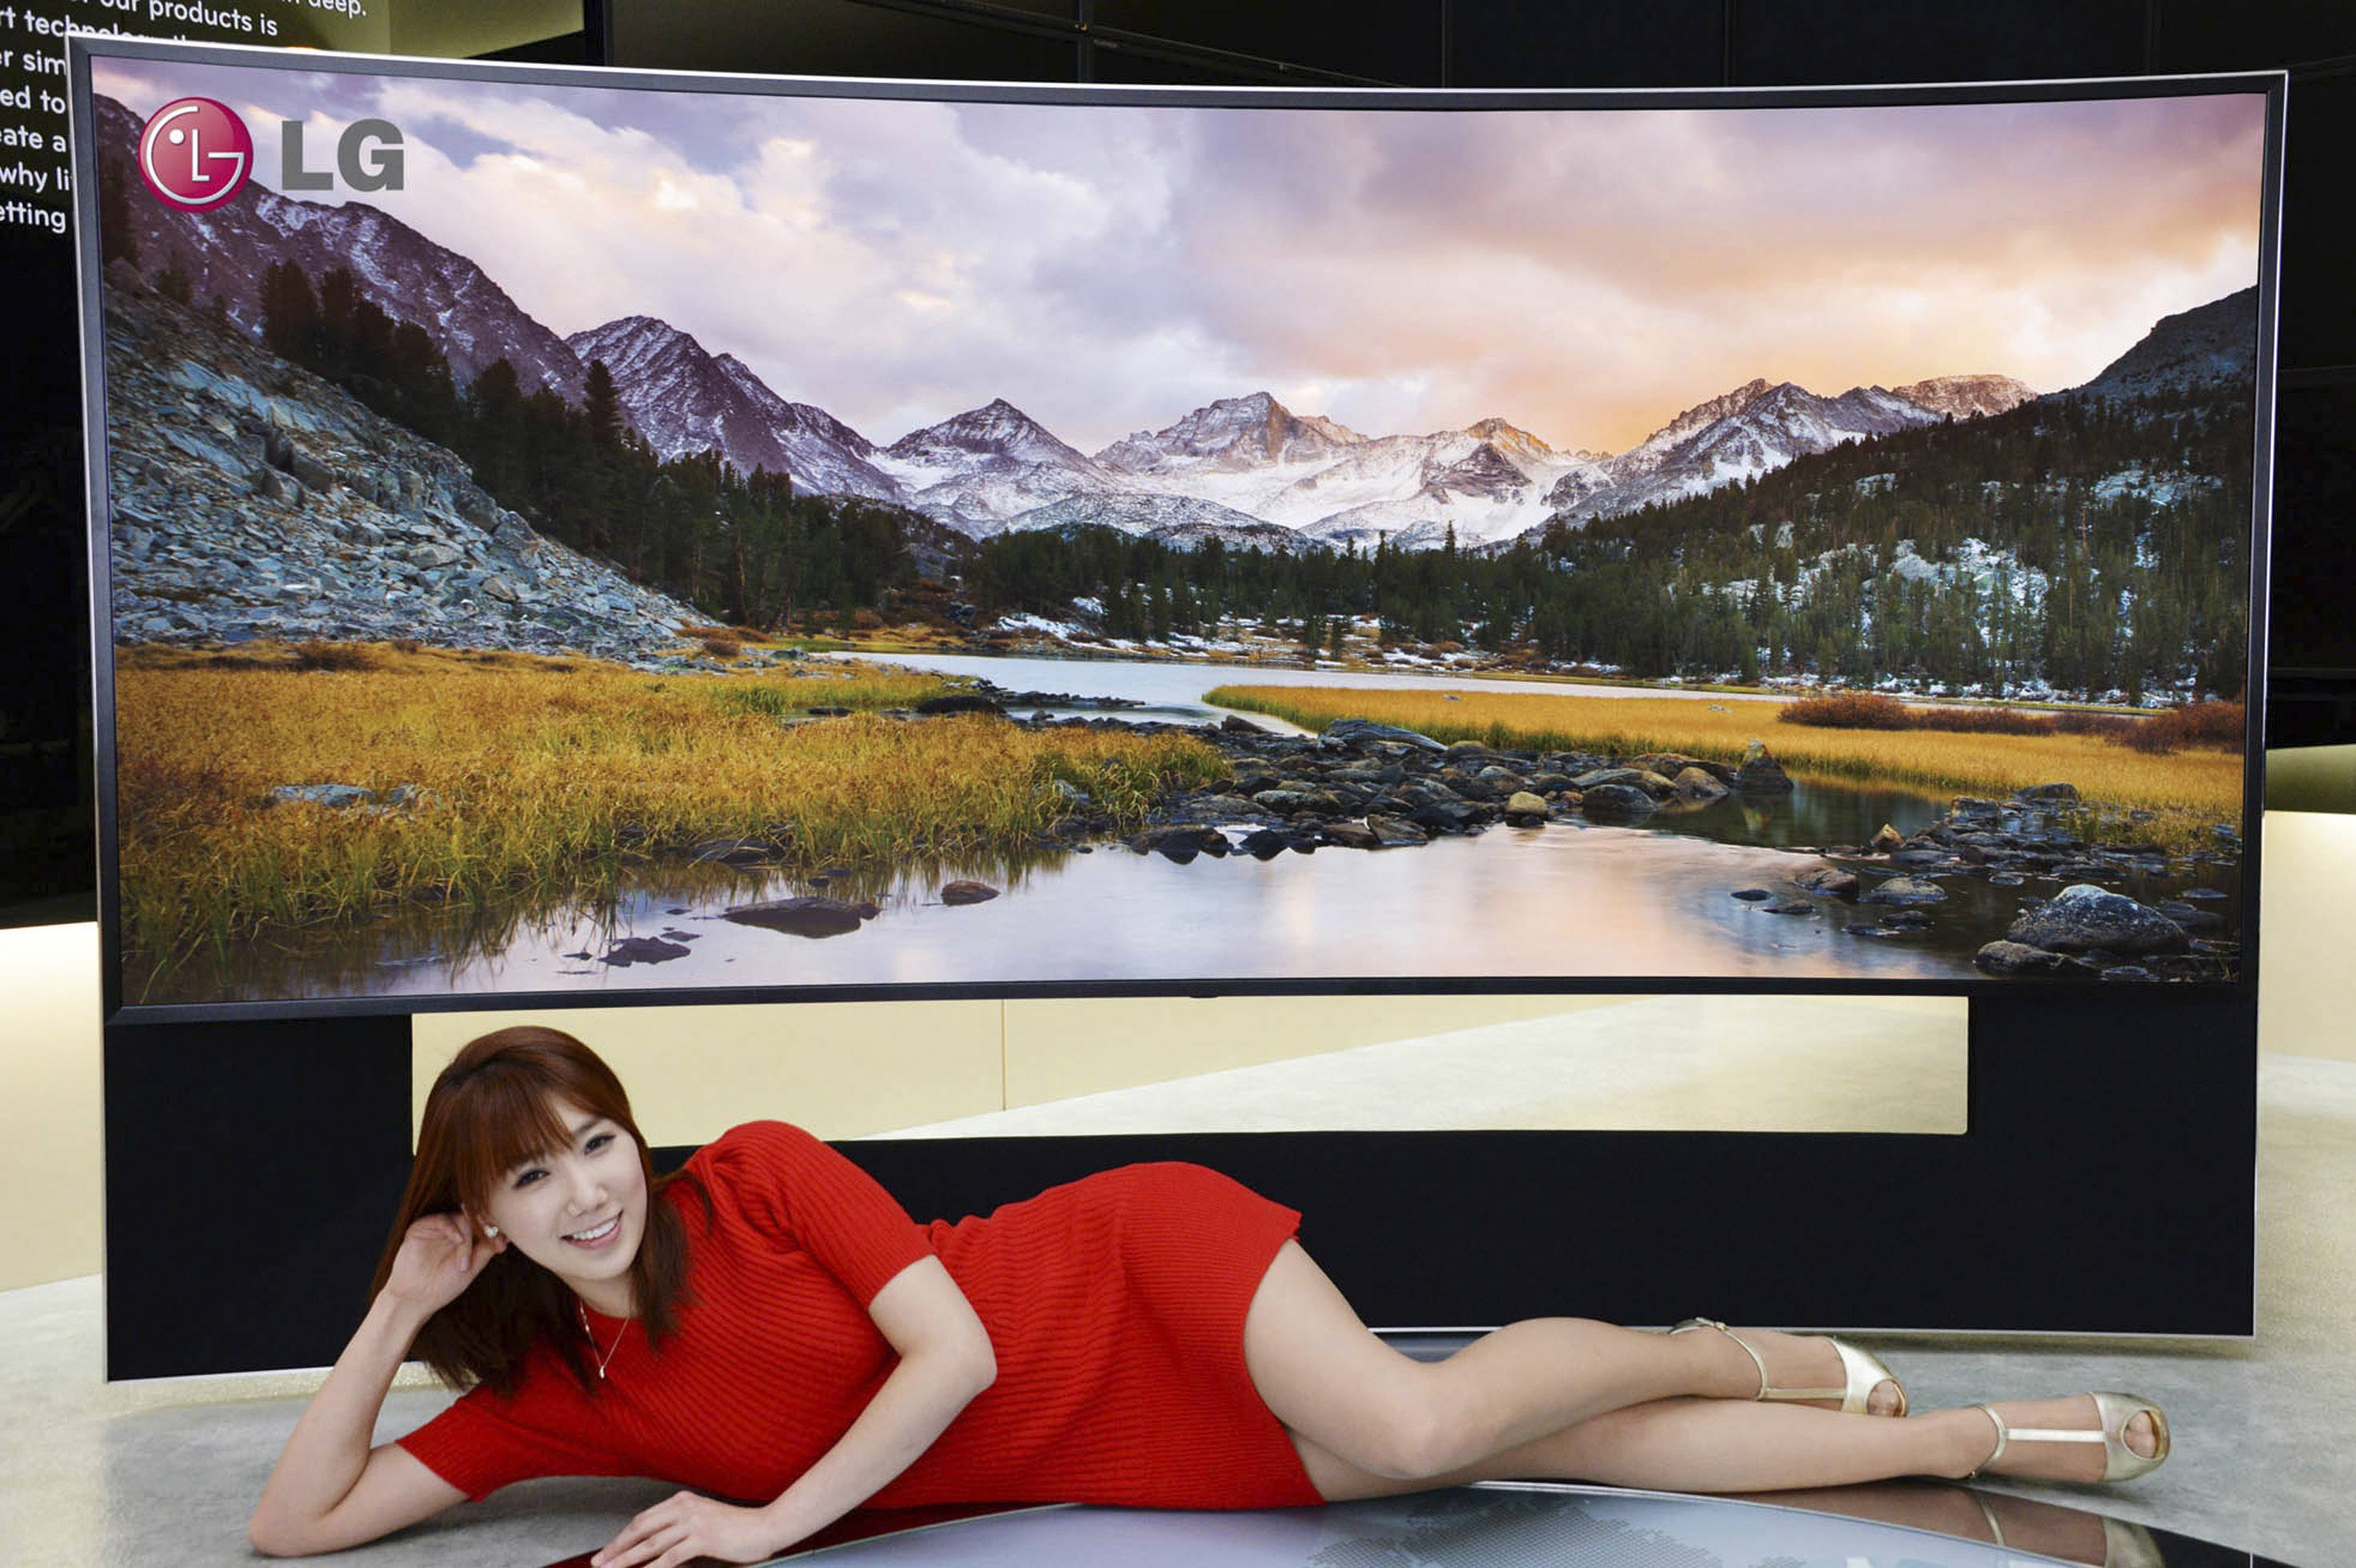 A model poses with an LG Electronics' 105-inch ultra-HD TV with a curved screen in Seoul, South Korea.